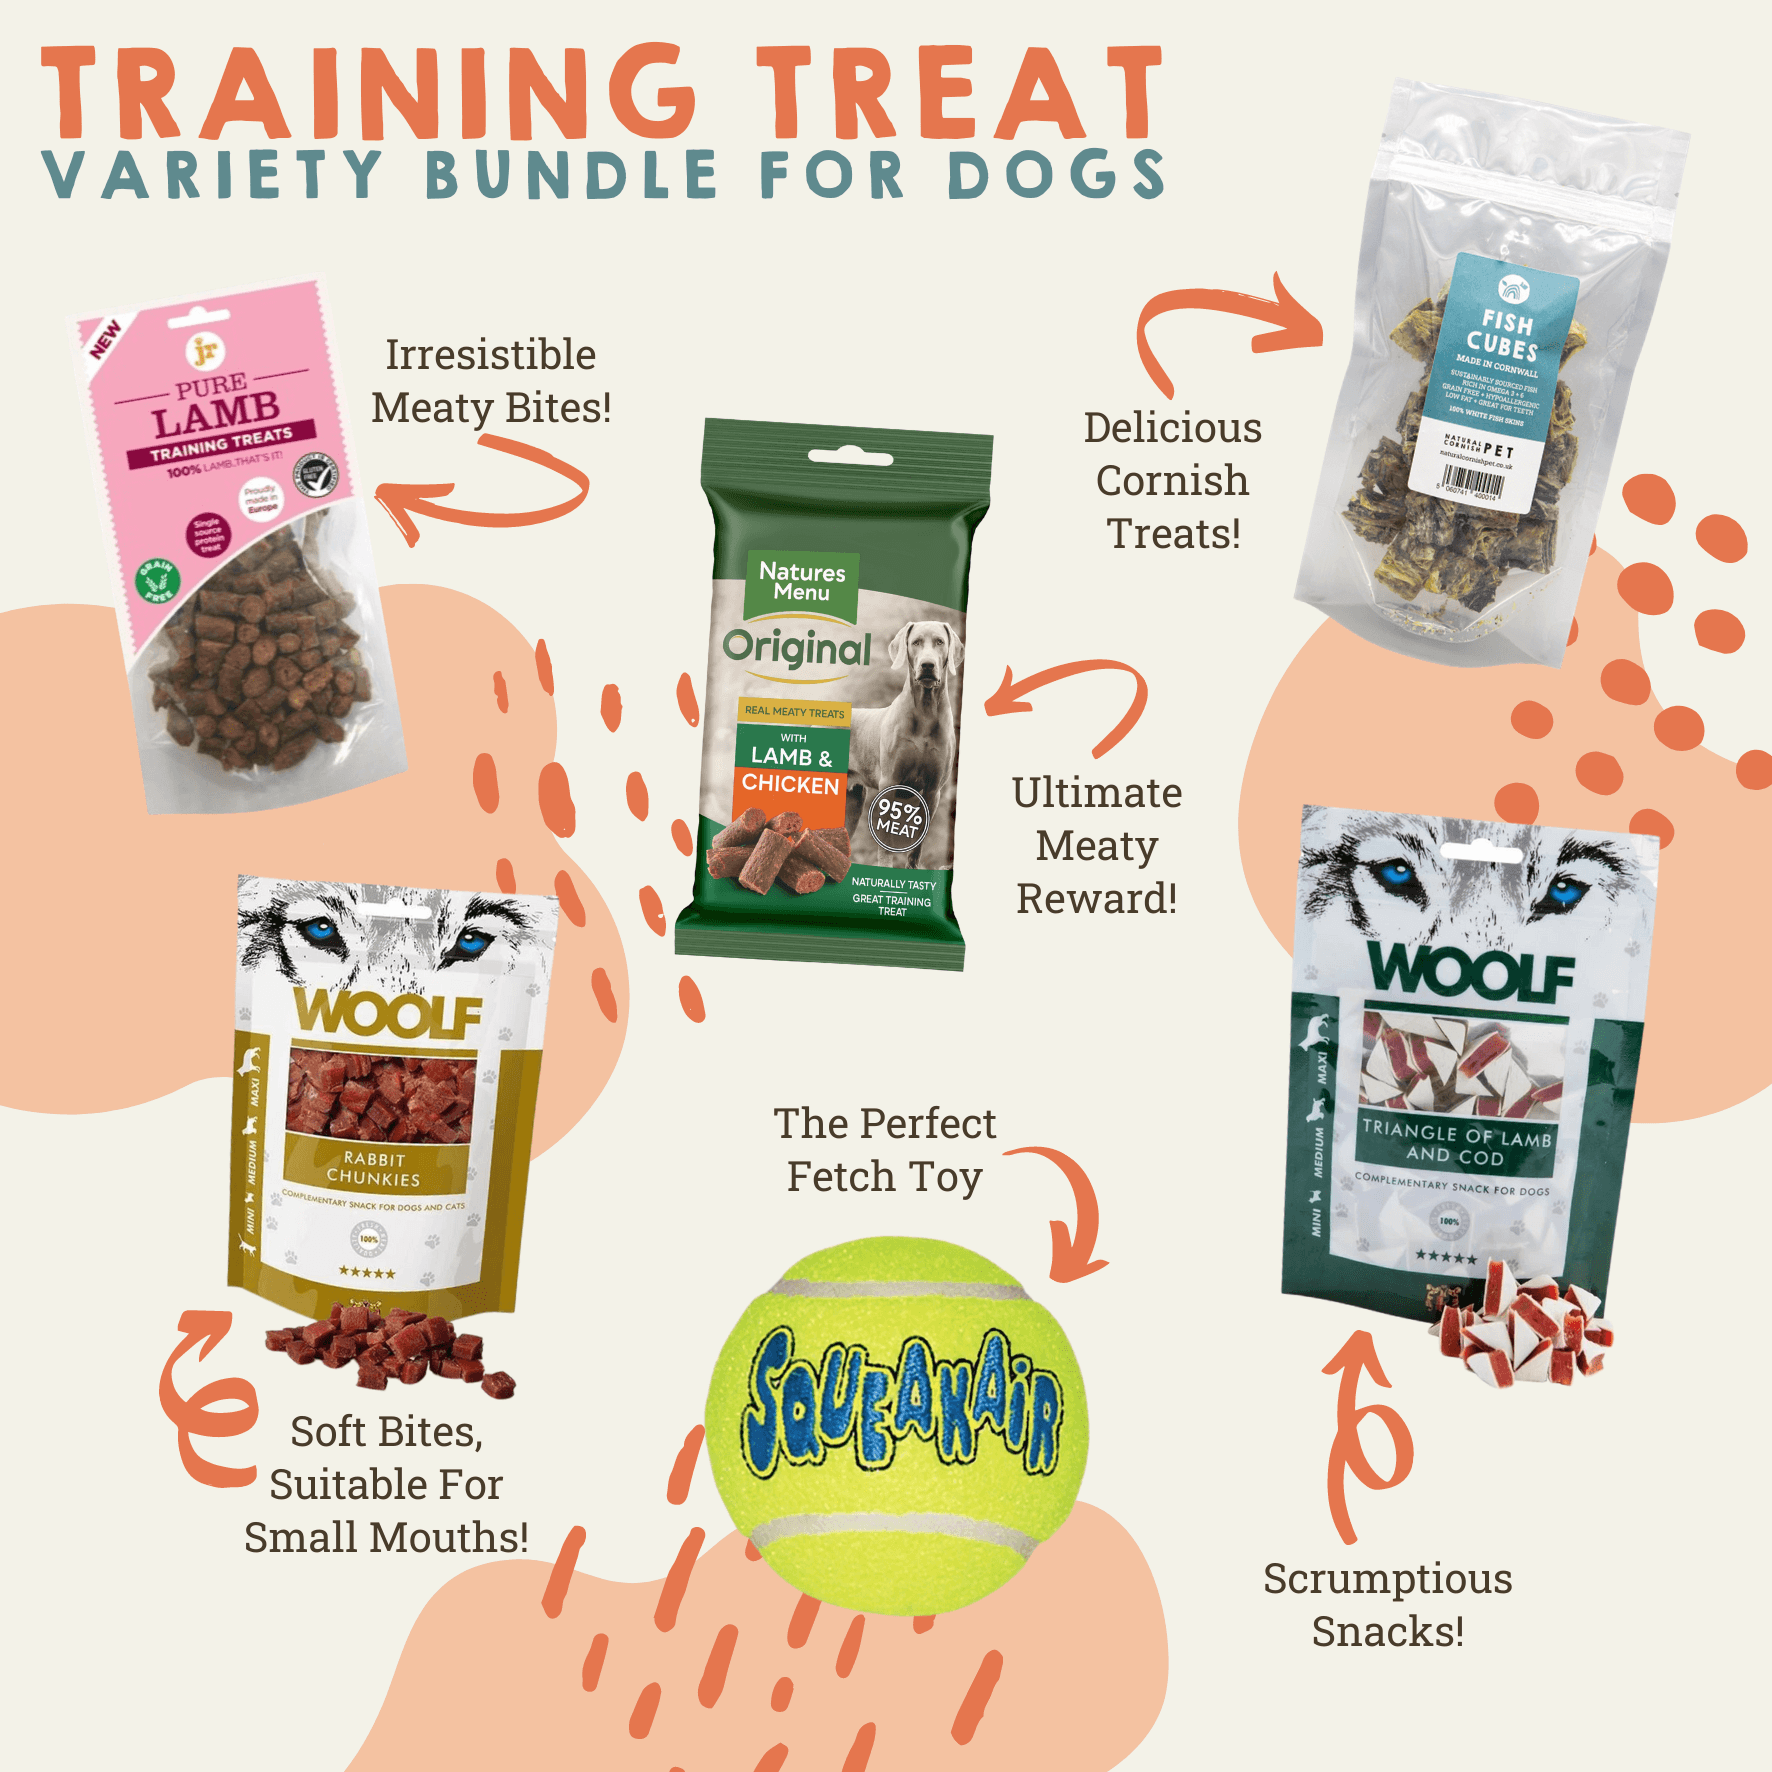 Grain Free Variety Training Treats Bundle for Dogs Dog Treats Natural Cornish Pet Shop